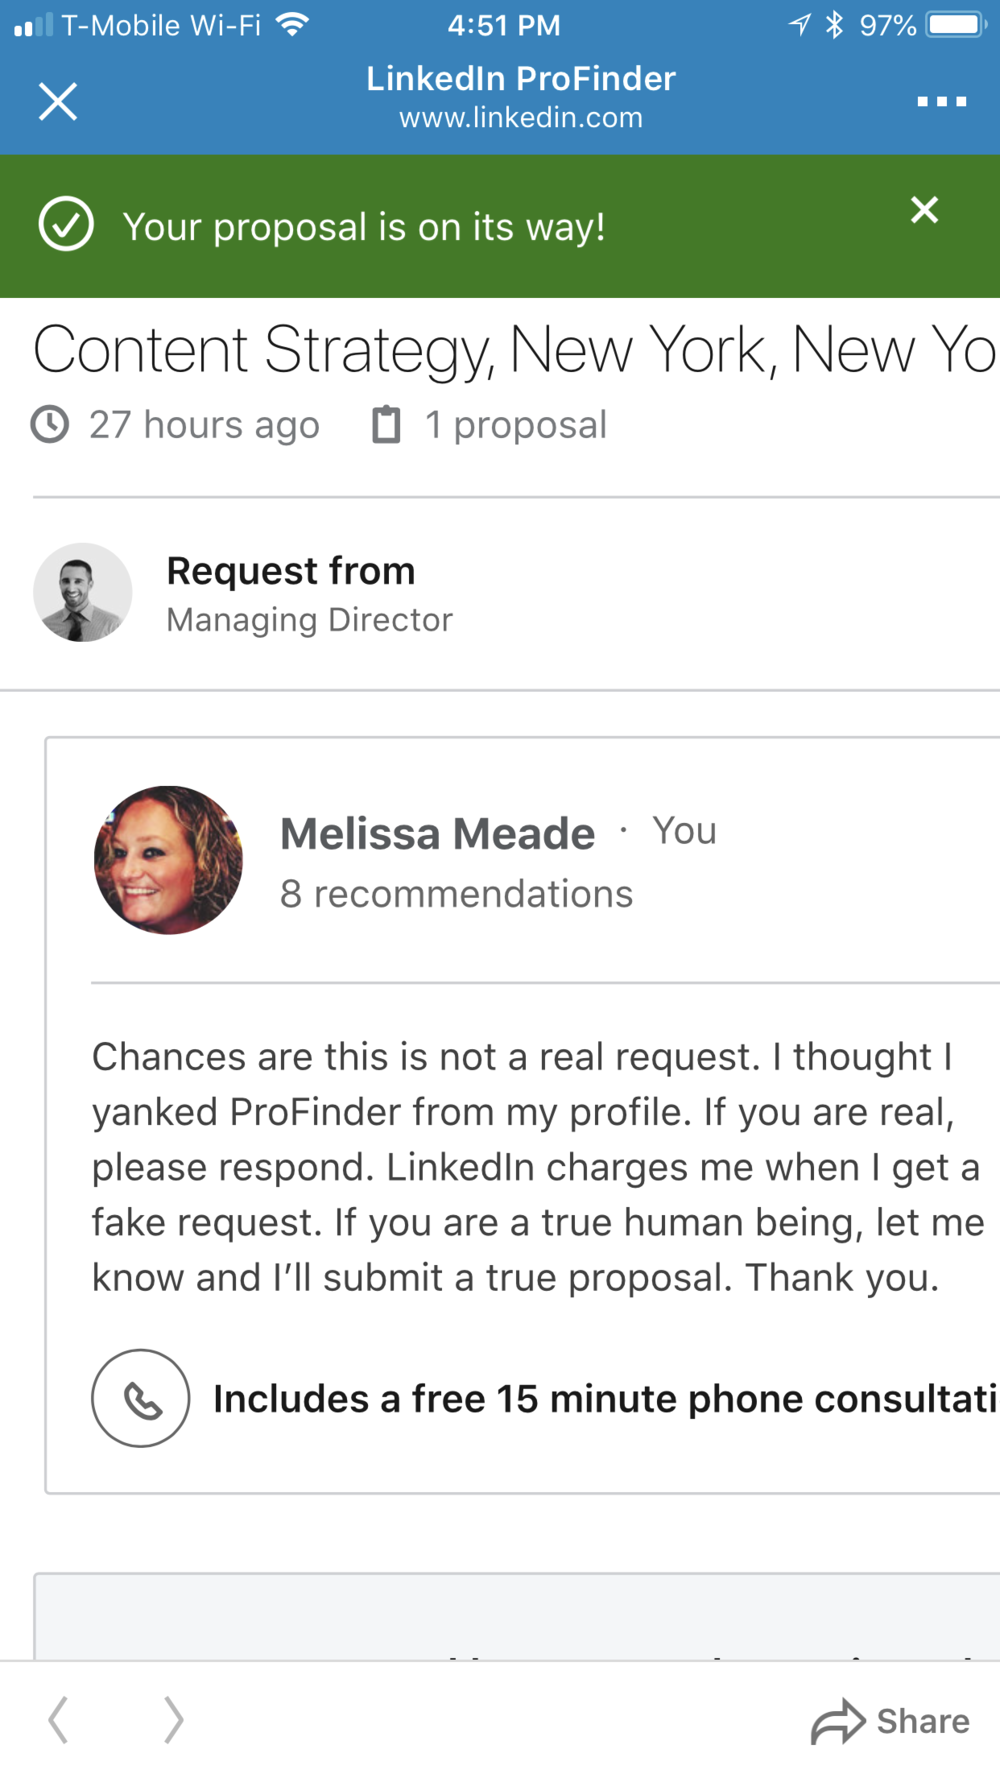 LinkedIn Phony Request